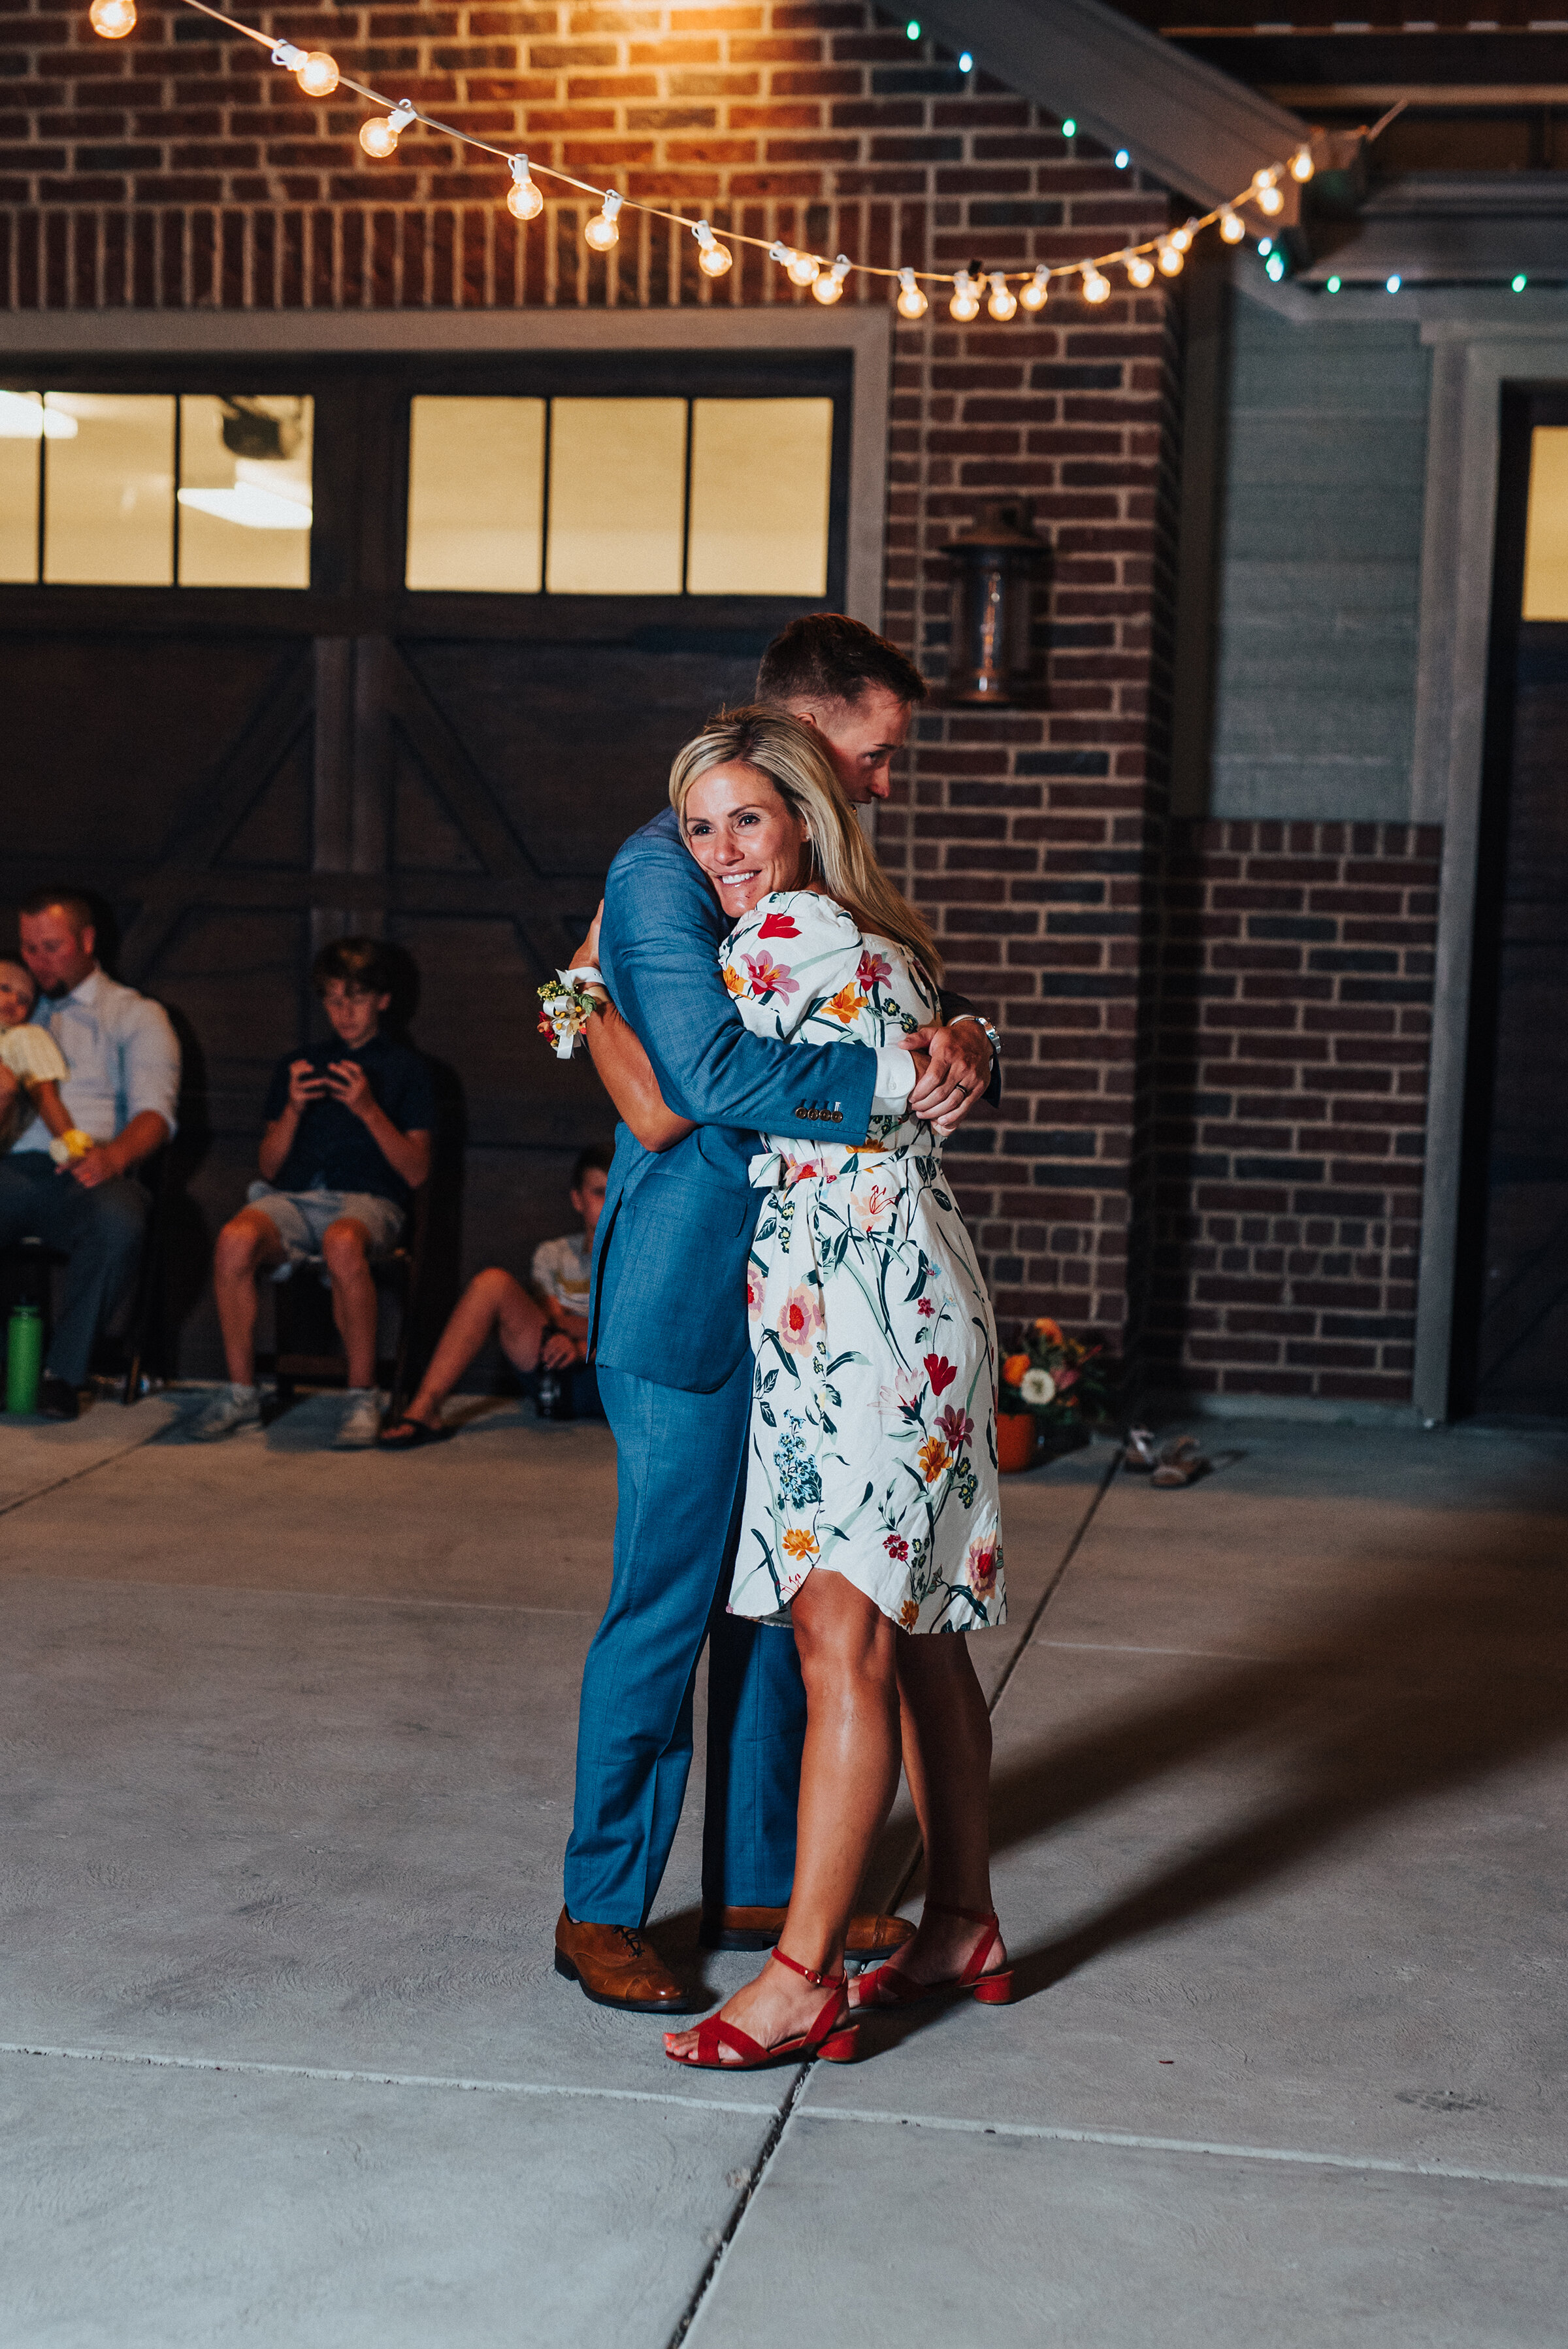 Mother of the groom dancing with her son at this dreamy backyard wedding in Park City. Kristi Alyse Photography Logan Utah photographer Park City wedding photographer Drive-Thru wedding COVID wedding neon signs socially distant wedding bride and groom mother of the groom #kristialysephotography #weddingphotographer #utahweddings #parkcity #utahbrides #drivethruwedding #covidwedding #LoganUtahphotographer #utahweddingphotographer #motherofthegroom